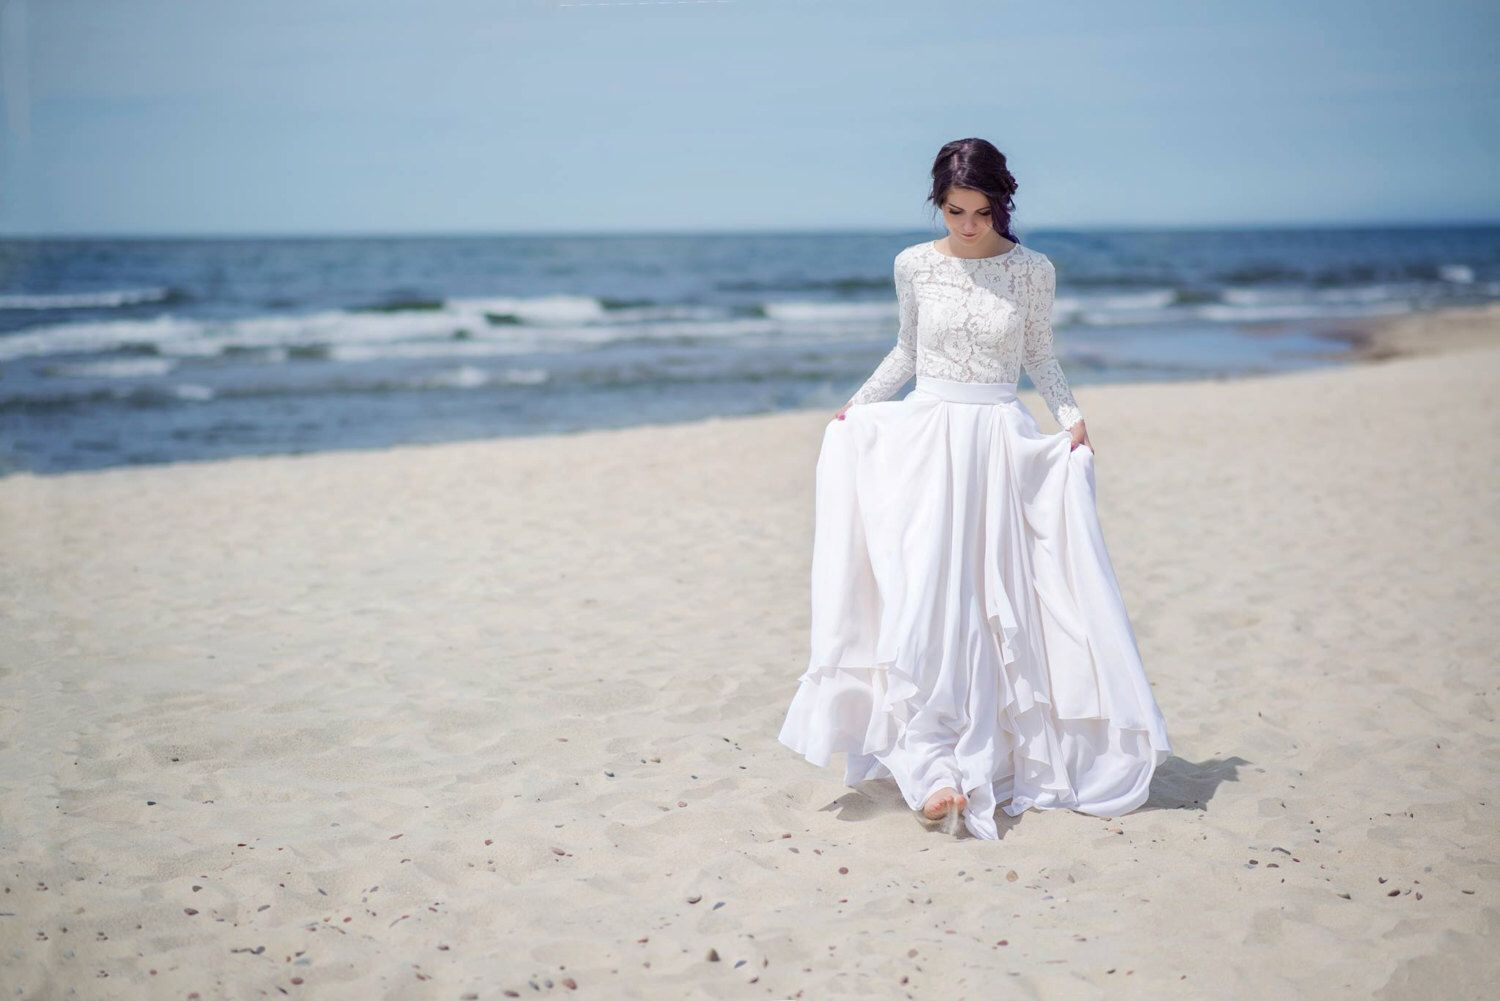 Colorful Simple Wedding Dress Pictures Sketch - All Wedding Dresses ...